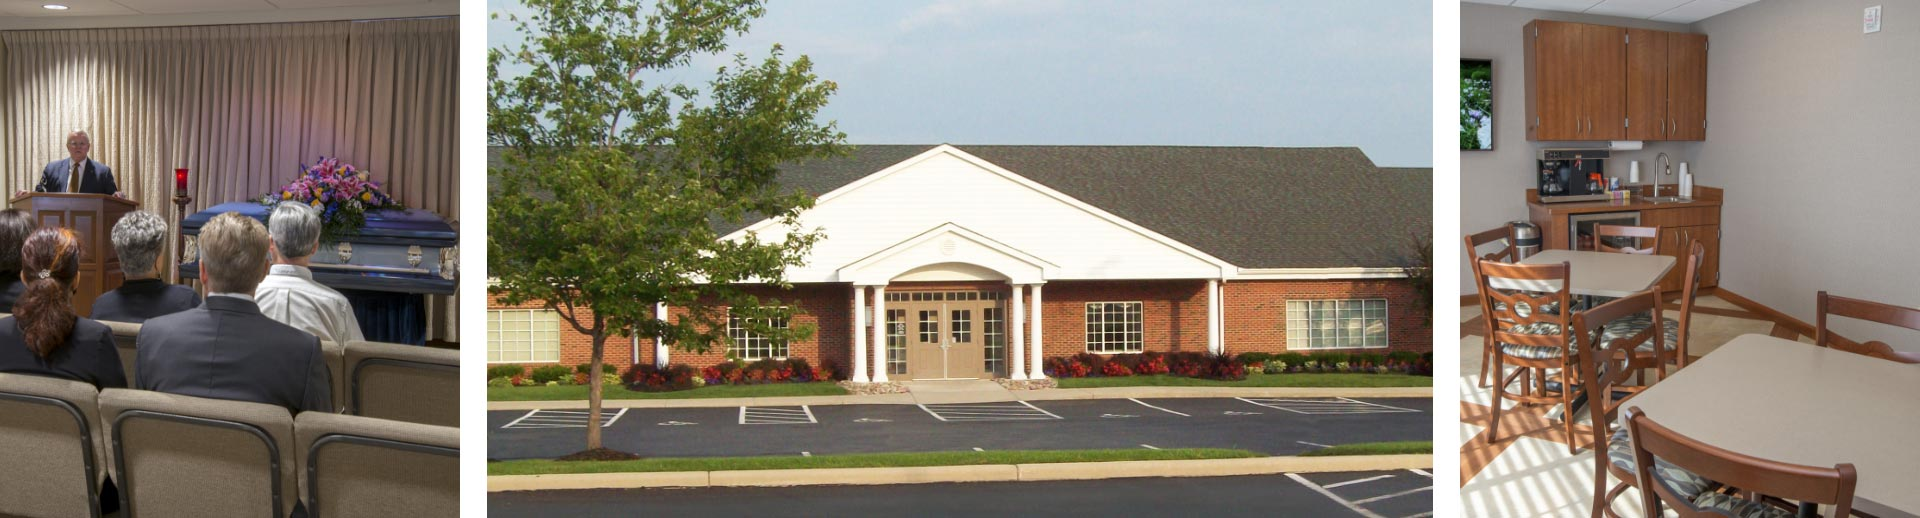 Funeral-Home-Dayton-OH